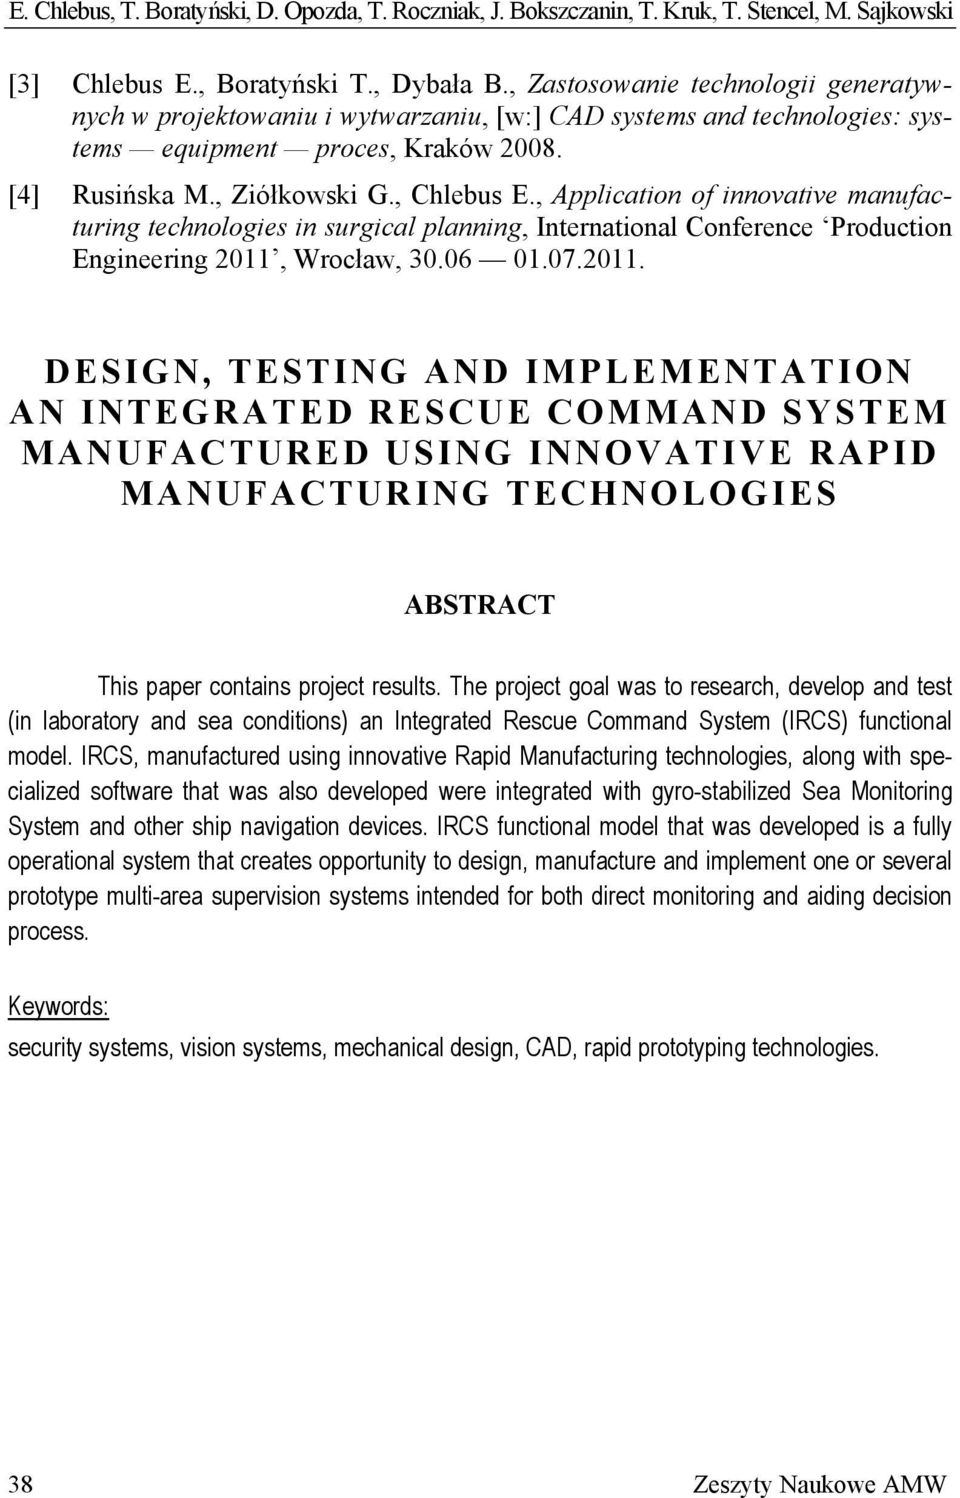 , Application of innovative manufacturing technologies in surgical planning, International Conference Production Engineering 2011,